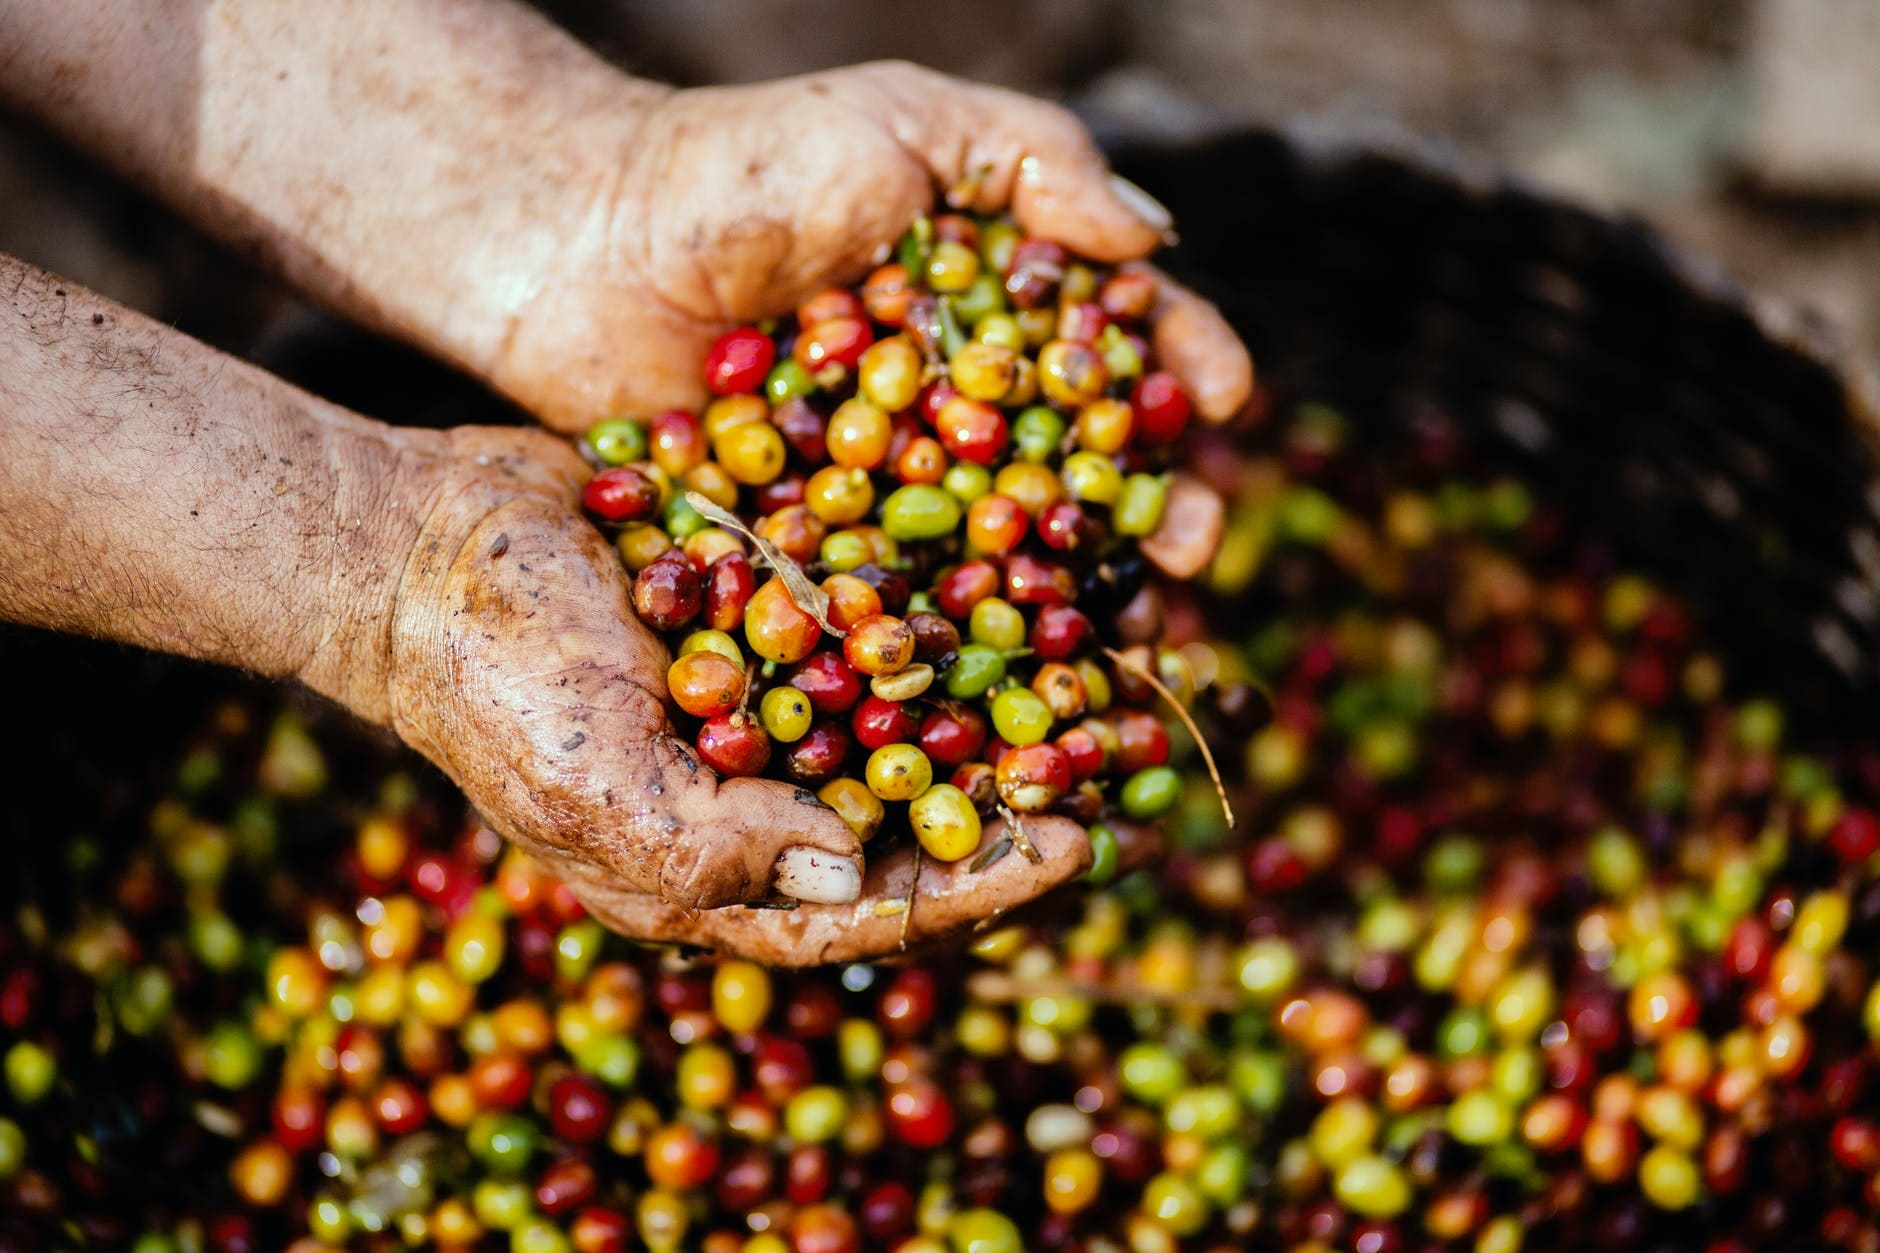 Benefits of green coffee for the body